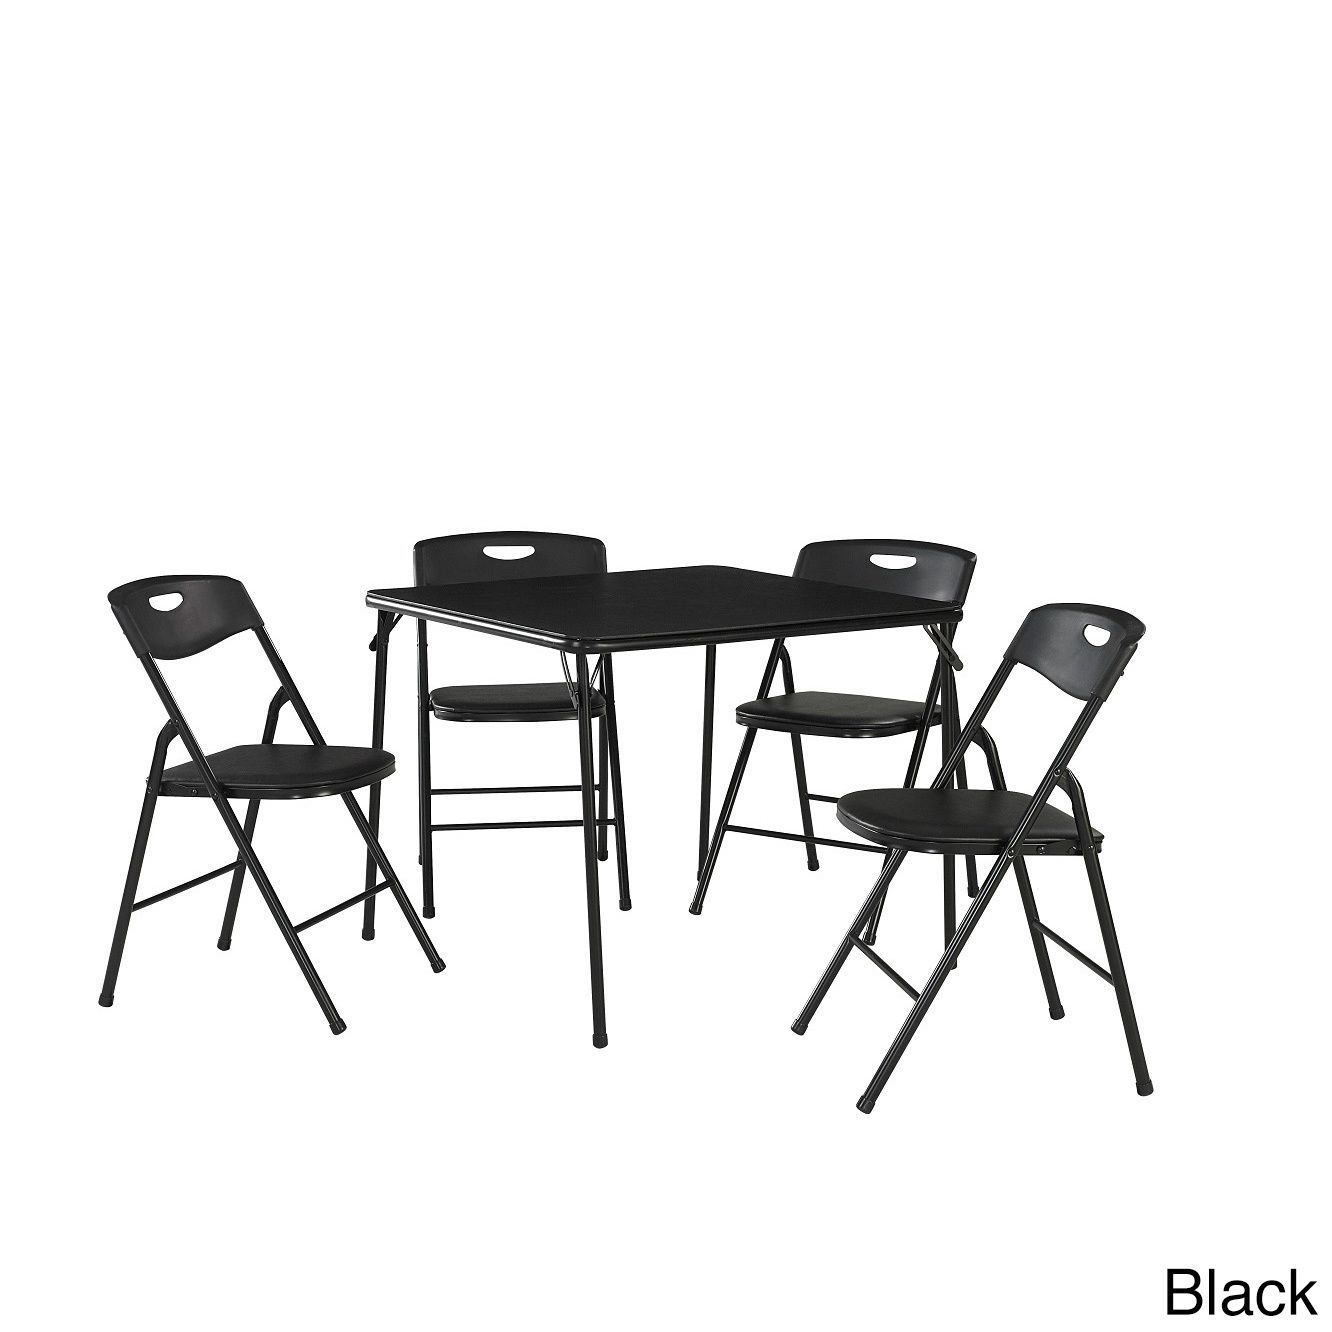 The Curated Nomad Hillard 5 Piece Folding Table And Chairs